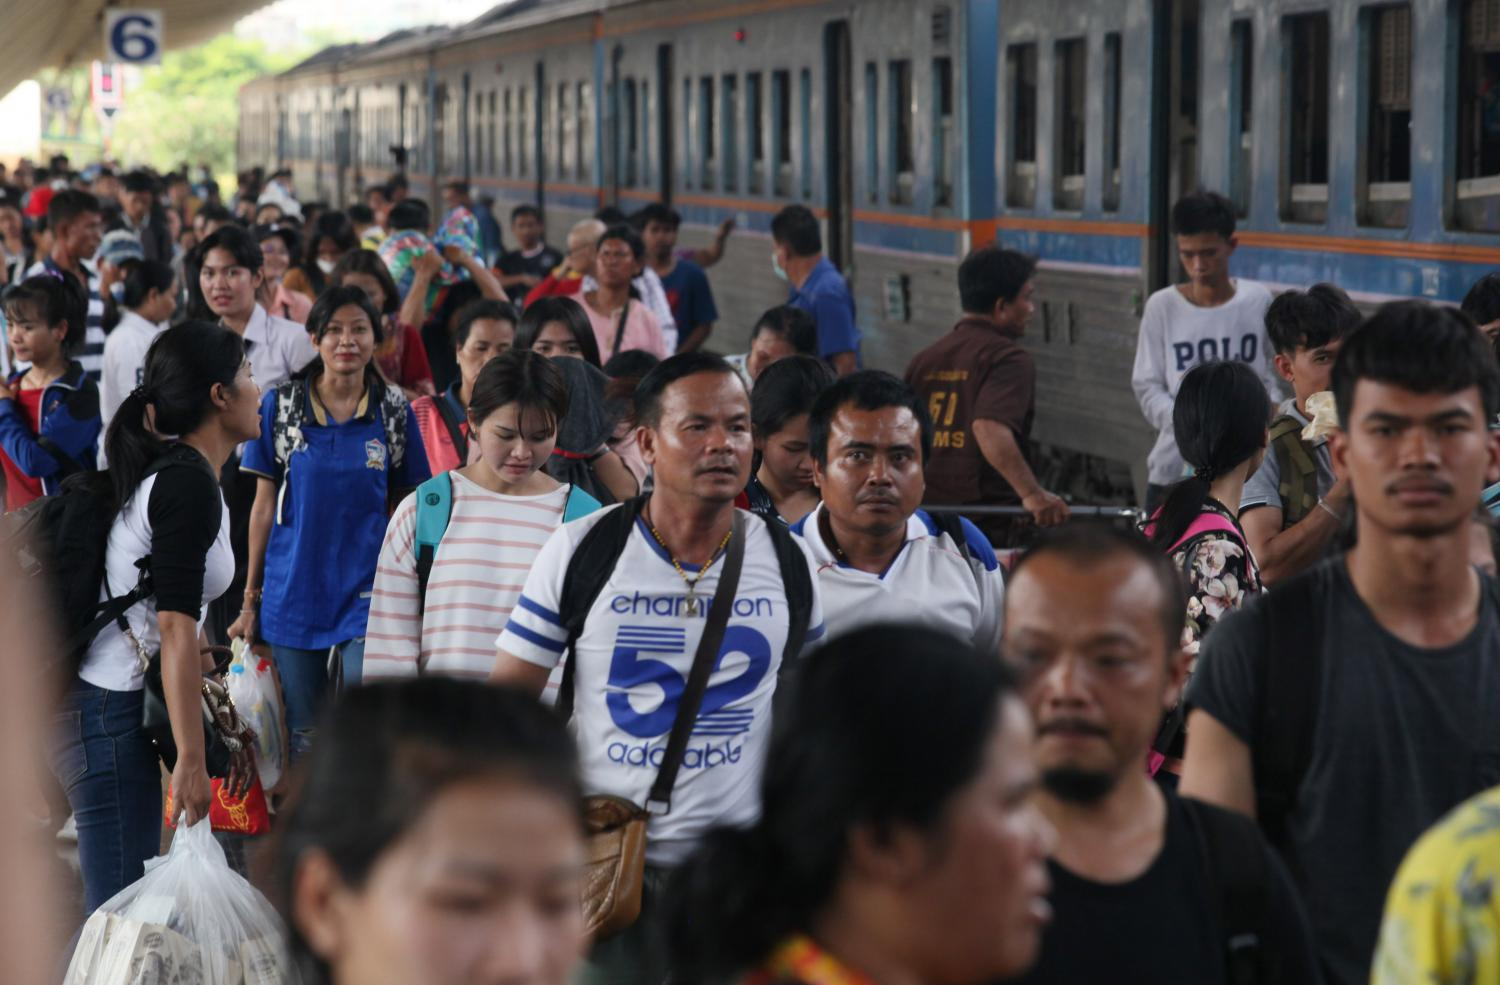 Passengers carry luggage at Hua Lamphong station in Bangkok after using the free train service. Thailand needs to get serious about tackling inequality, says economist Somchai Jitsuchon. APICHIT JINAKUL